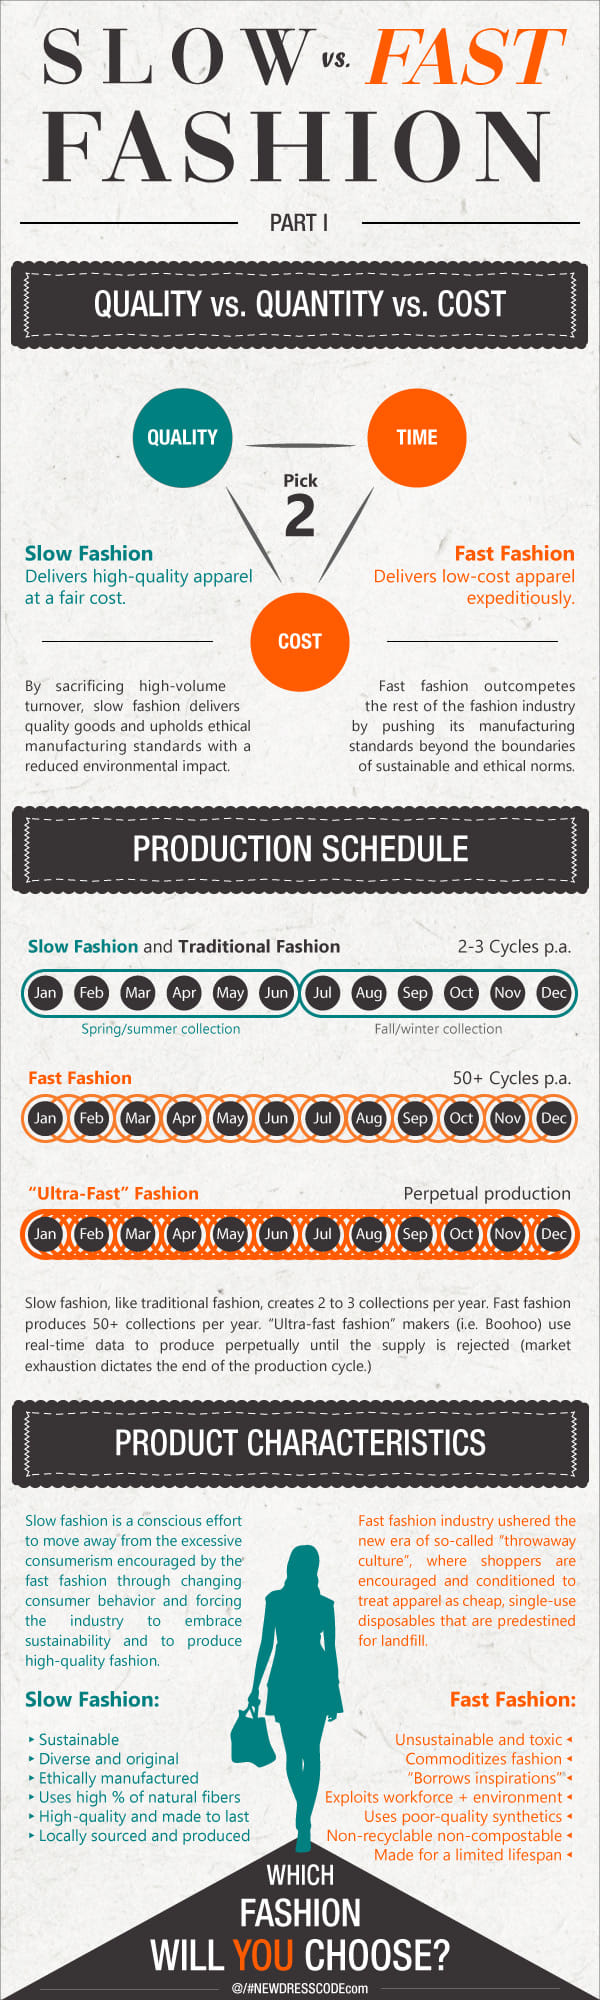 Slow fashion vs. Fast Fashion: The most important information condensed in one infographic